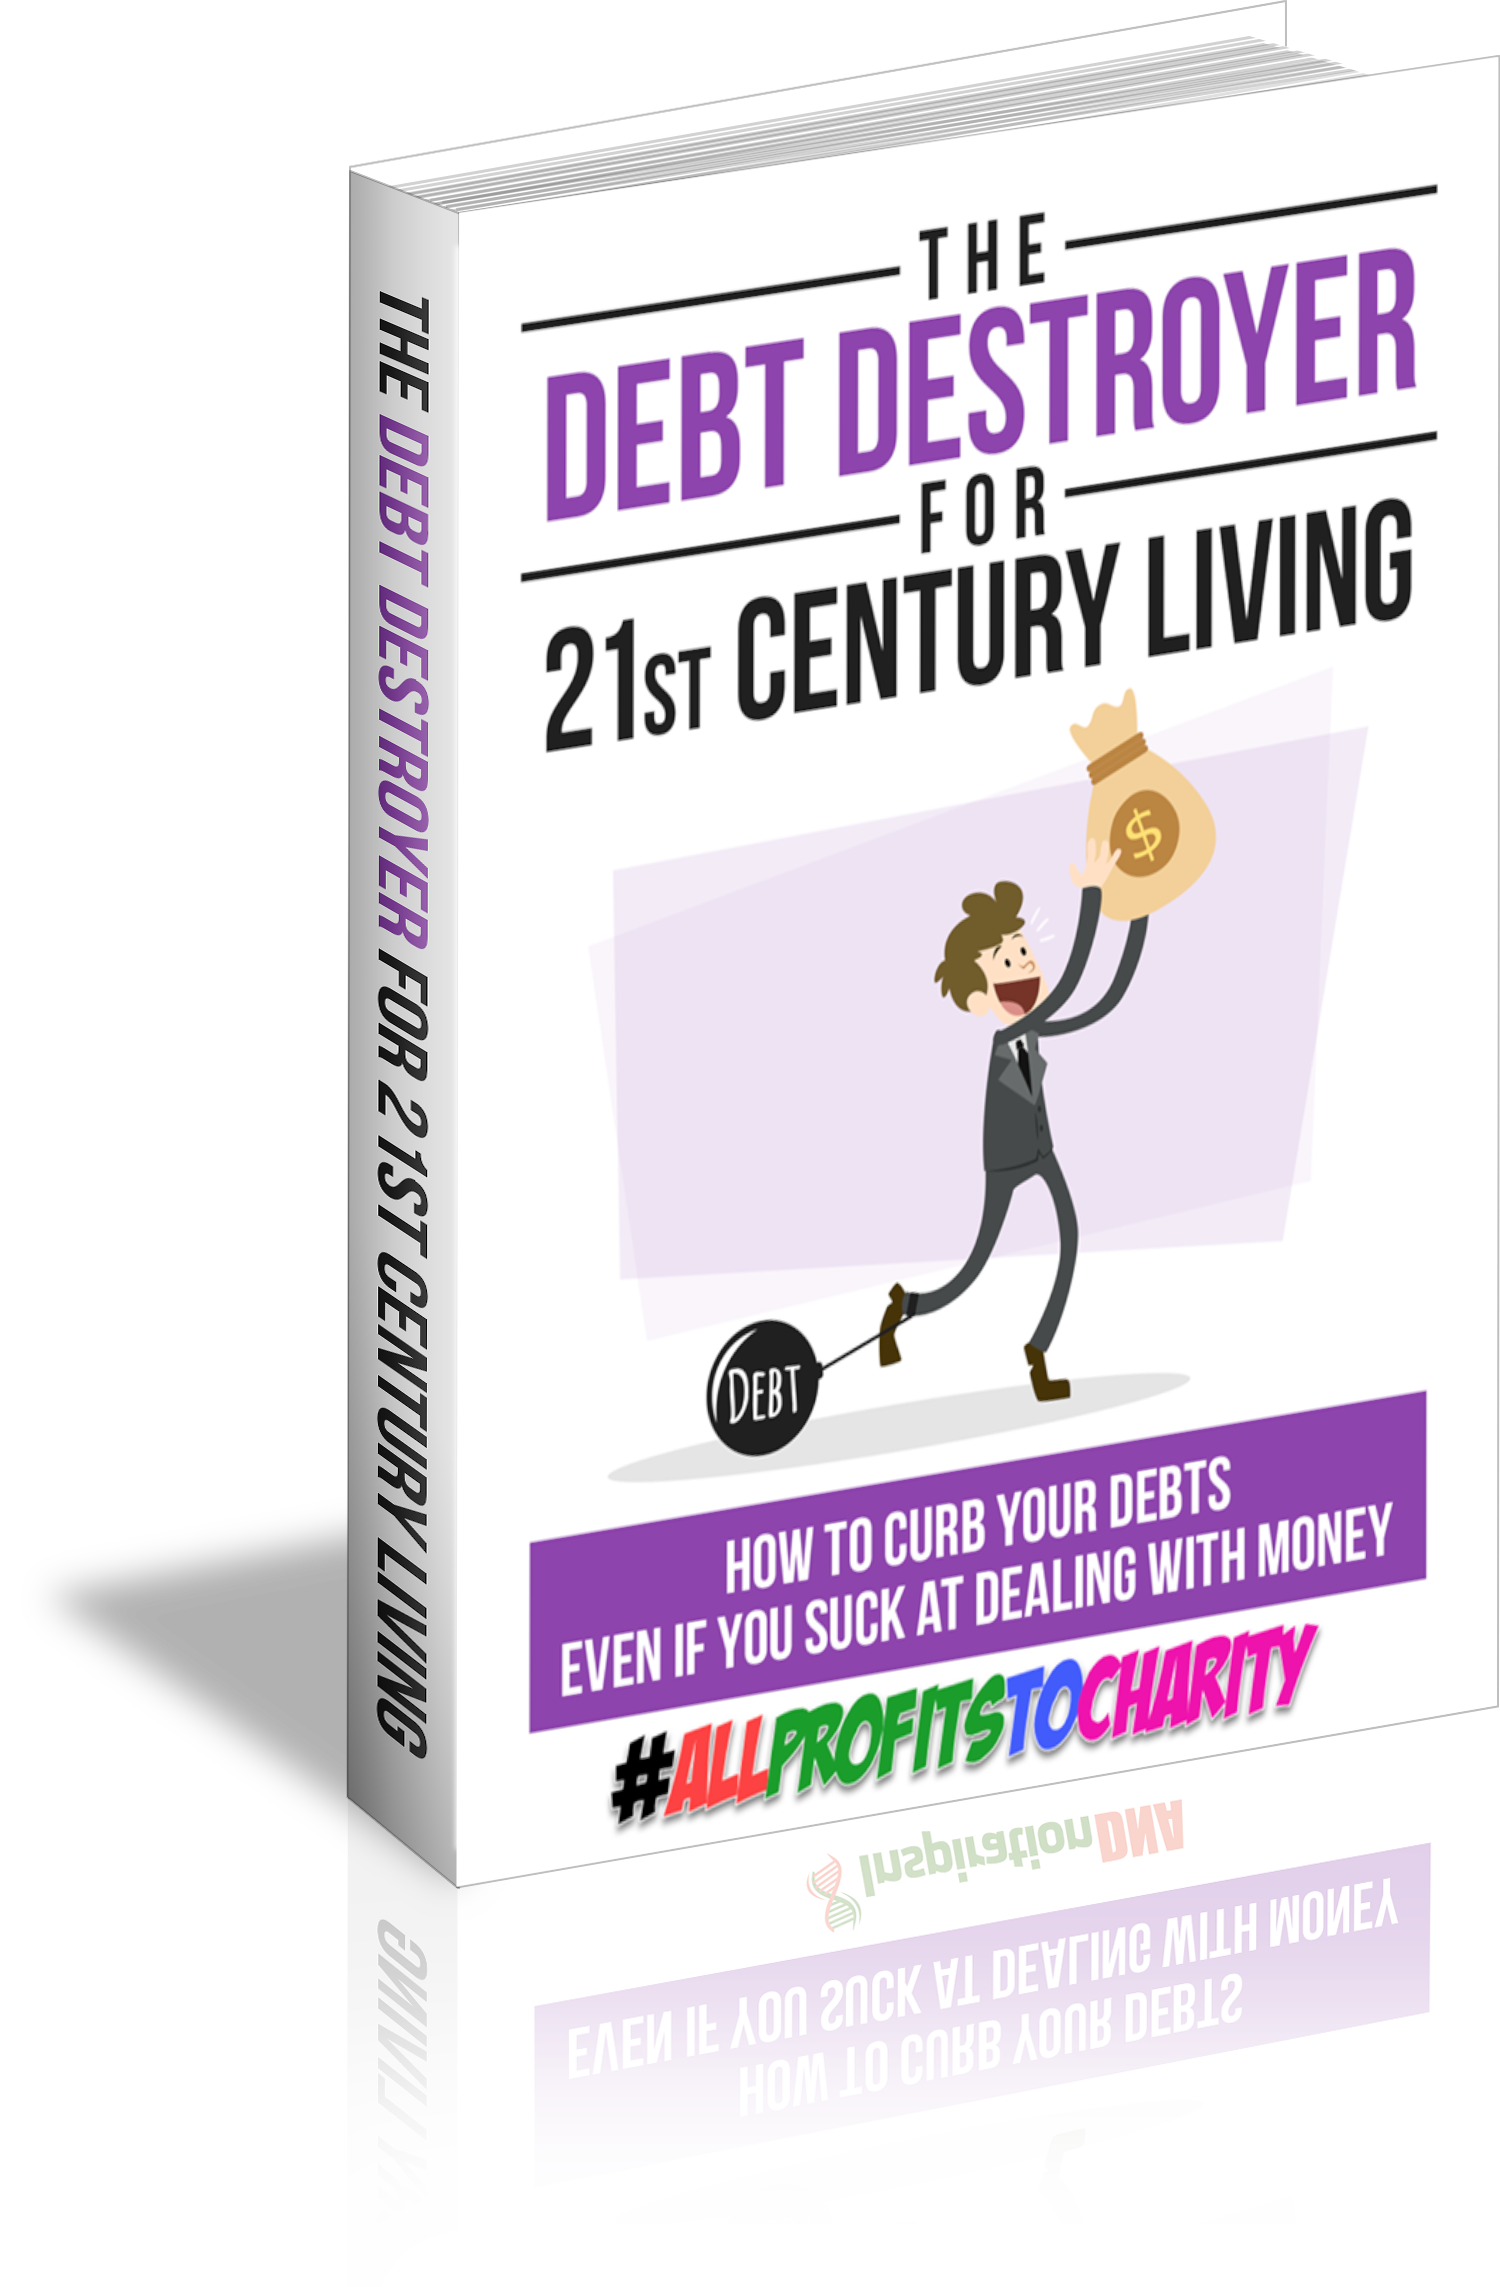 The Debt Destroyer For 21st Century Living cover